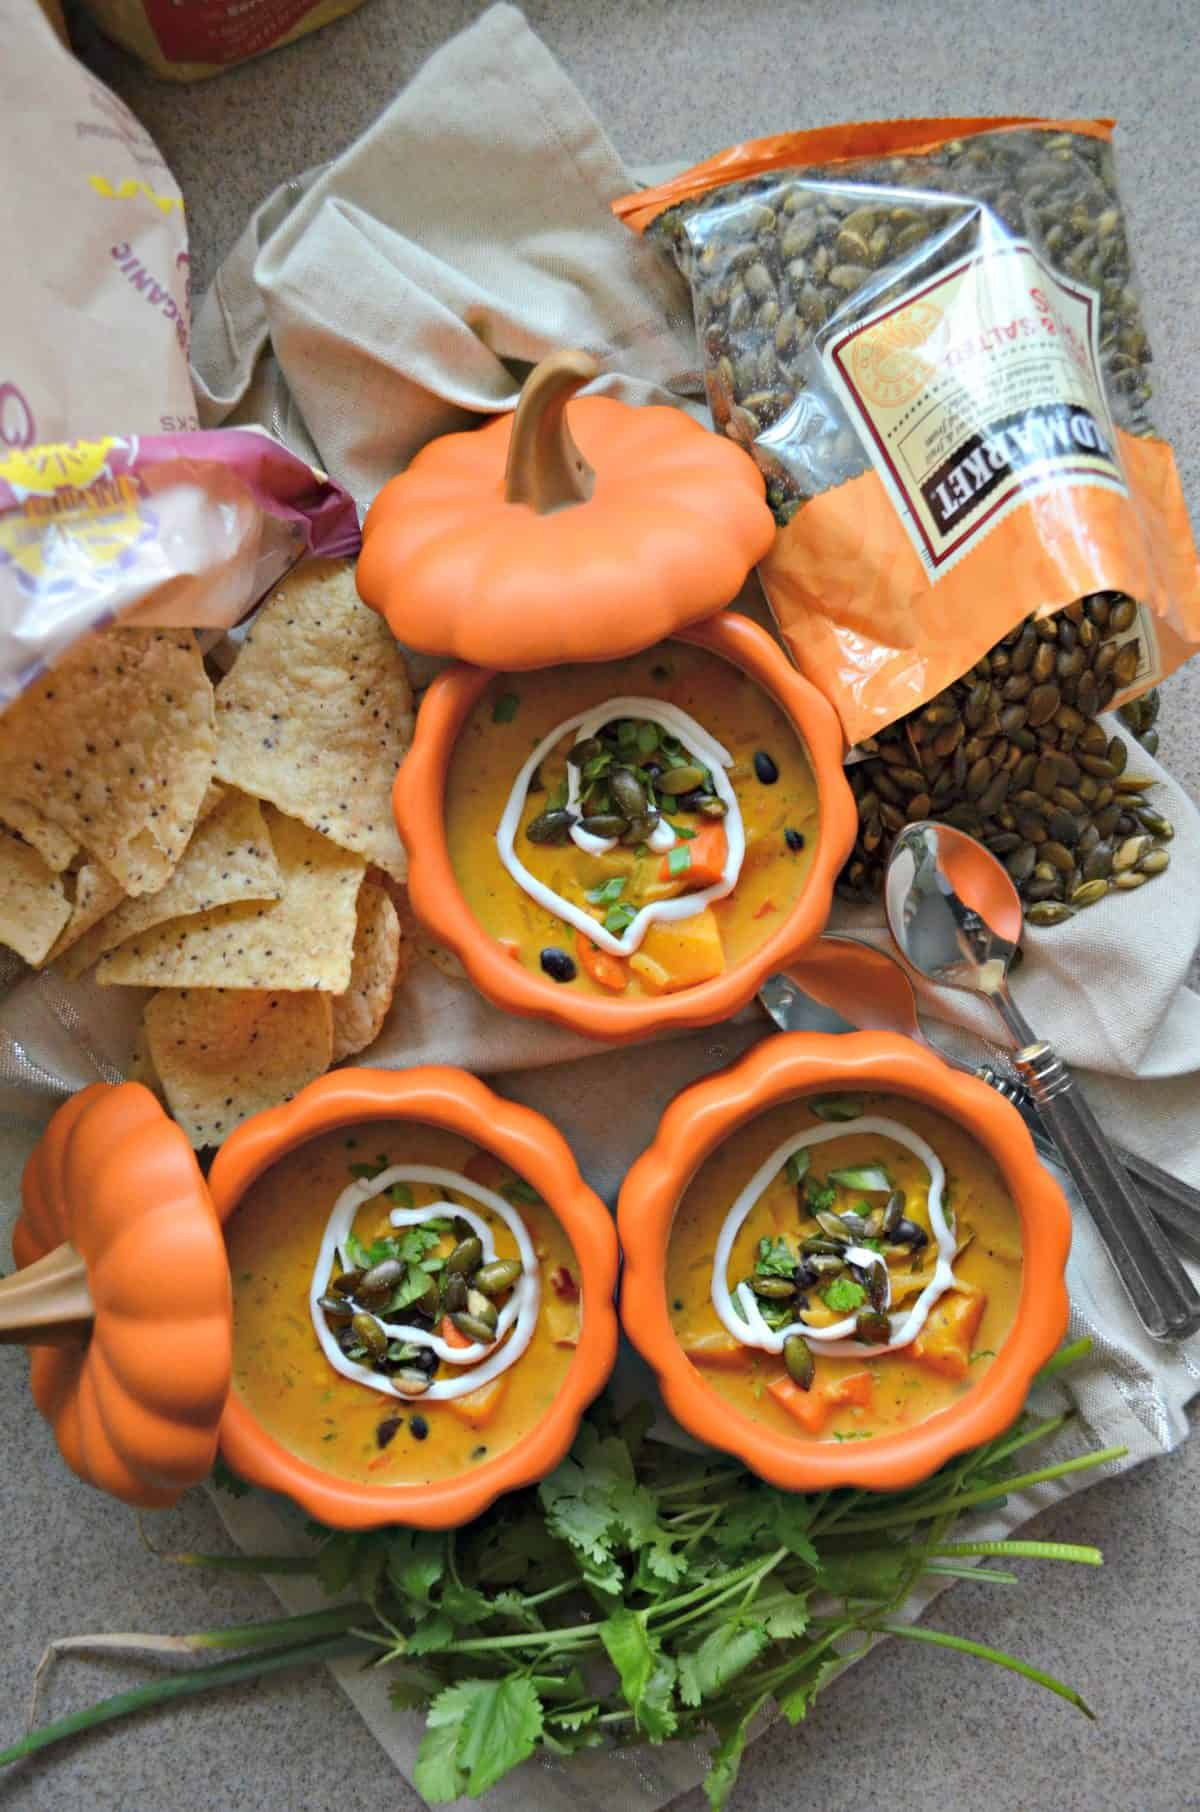 yellowish vegetable soup with white sauce on top in small pumpkin bowls next to tortilla chips and seeds.